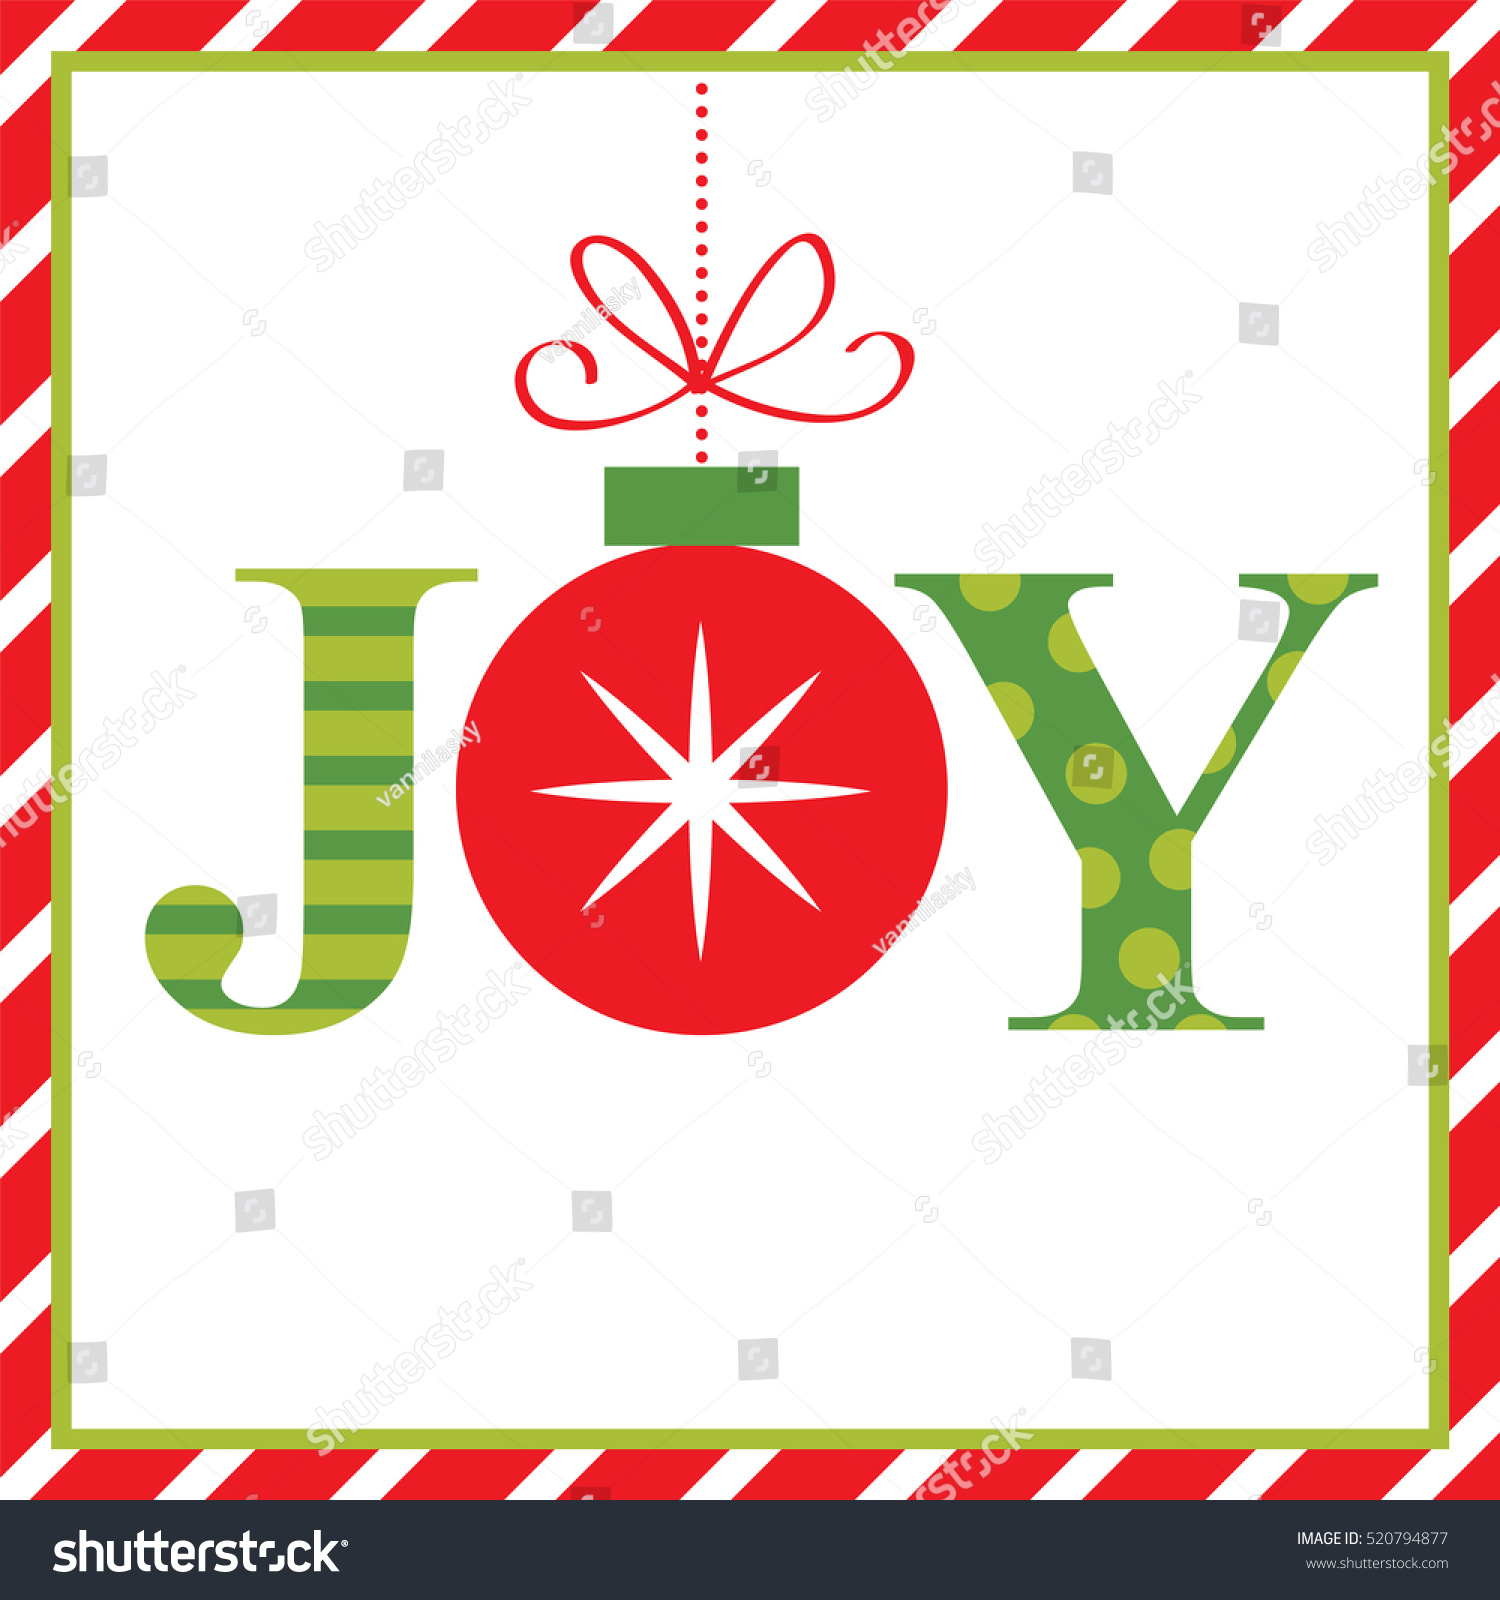 Joy Christmas Card Stock Vector (Royalty Free) 520794877 - Shutterstock